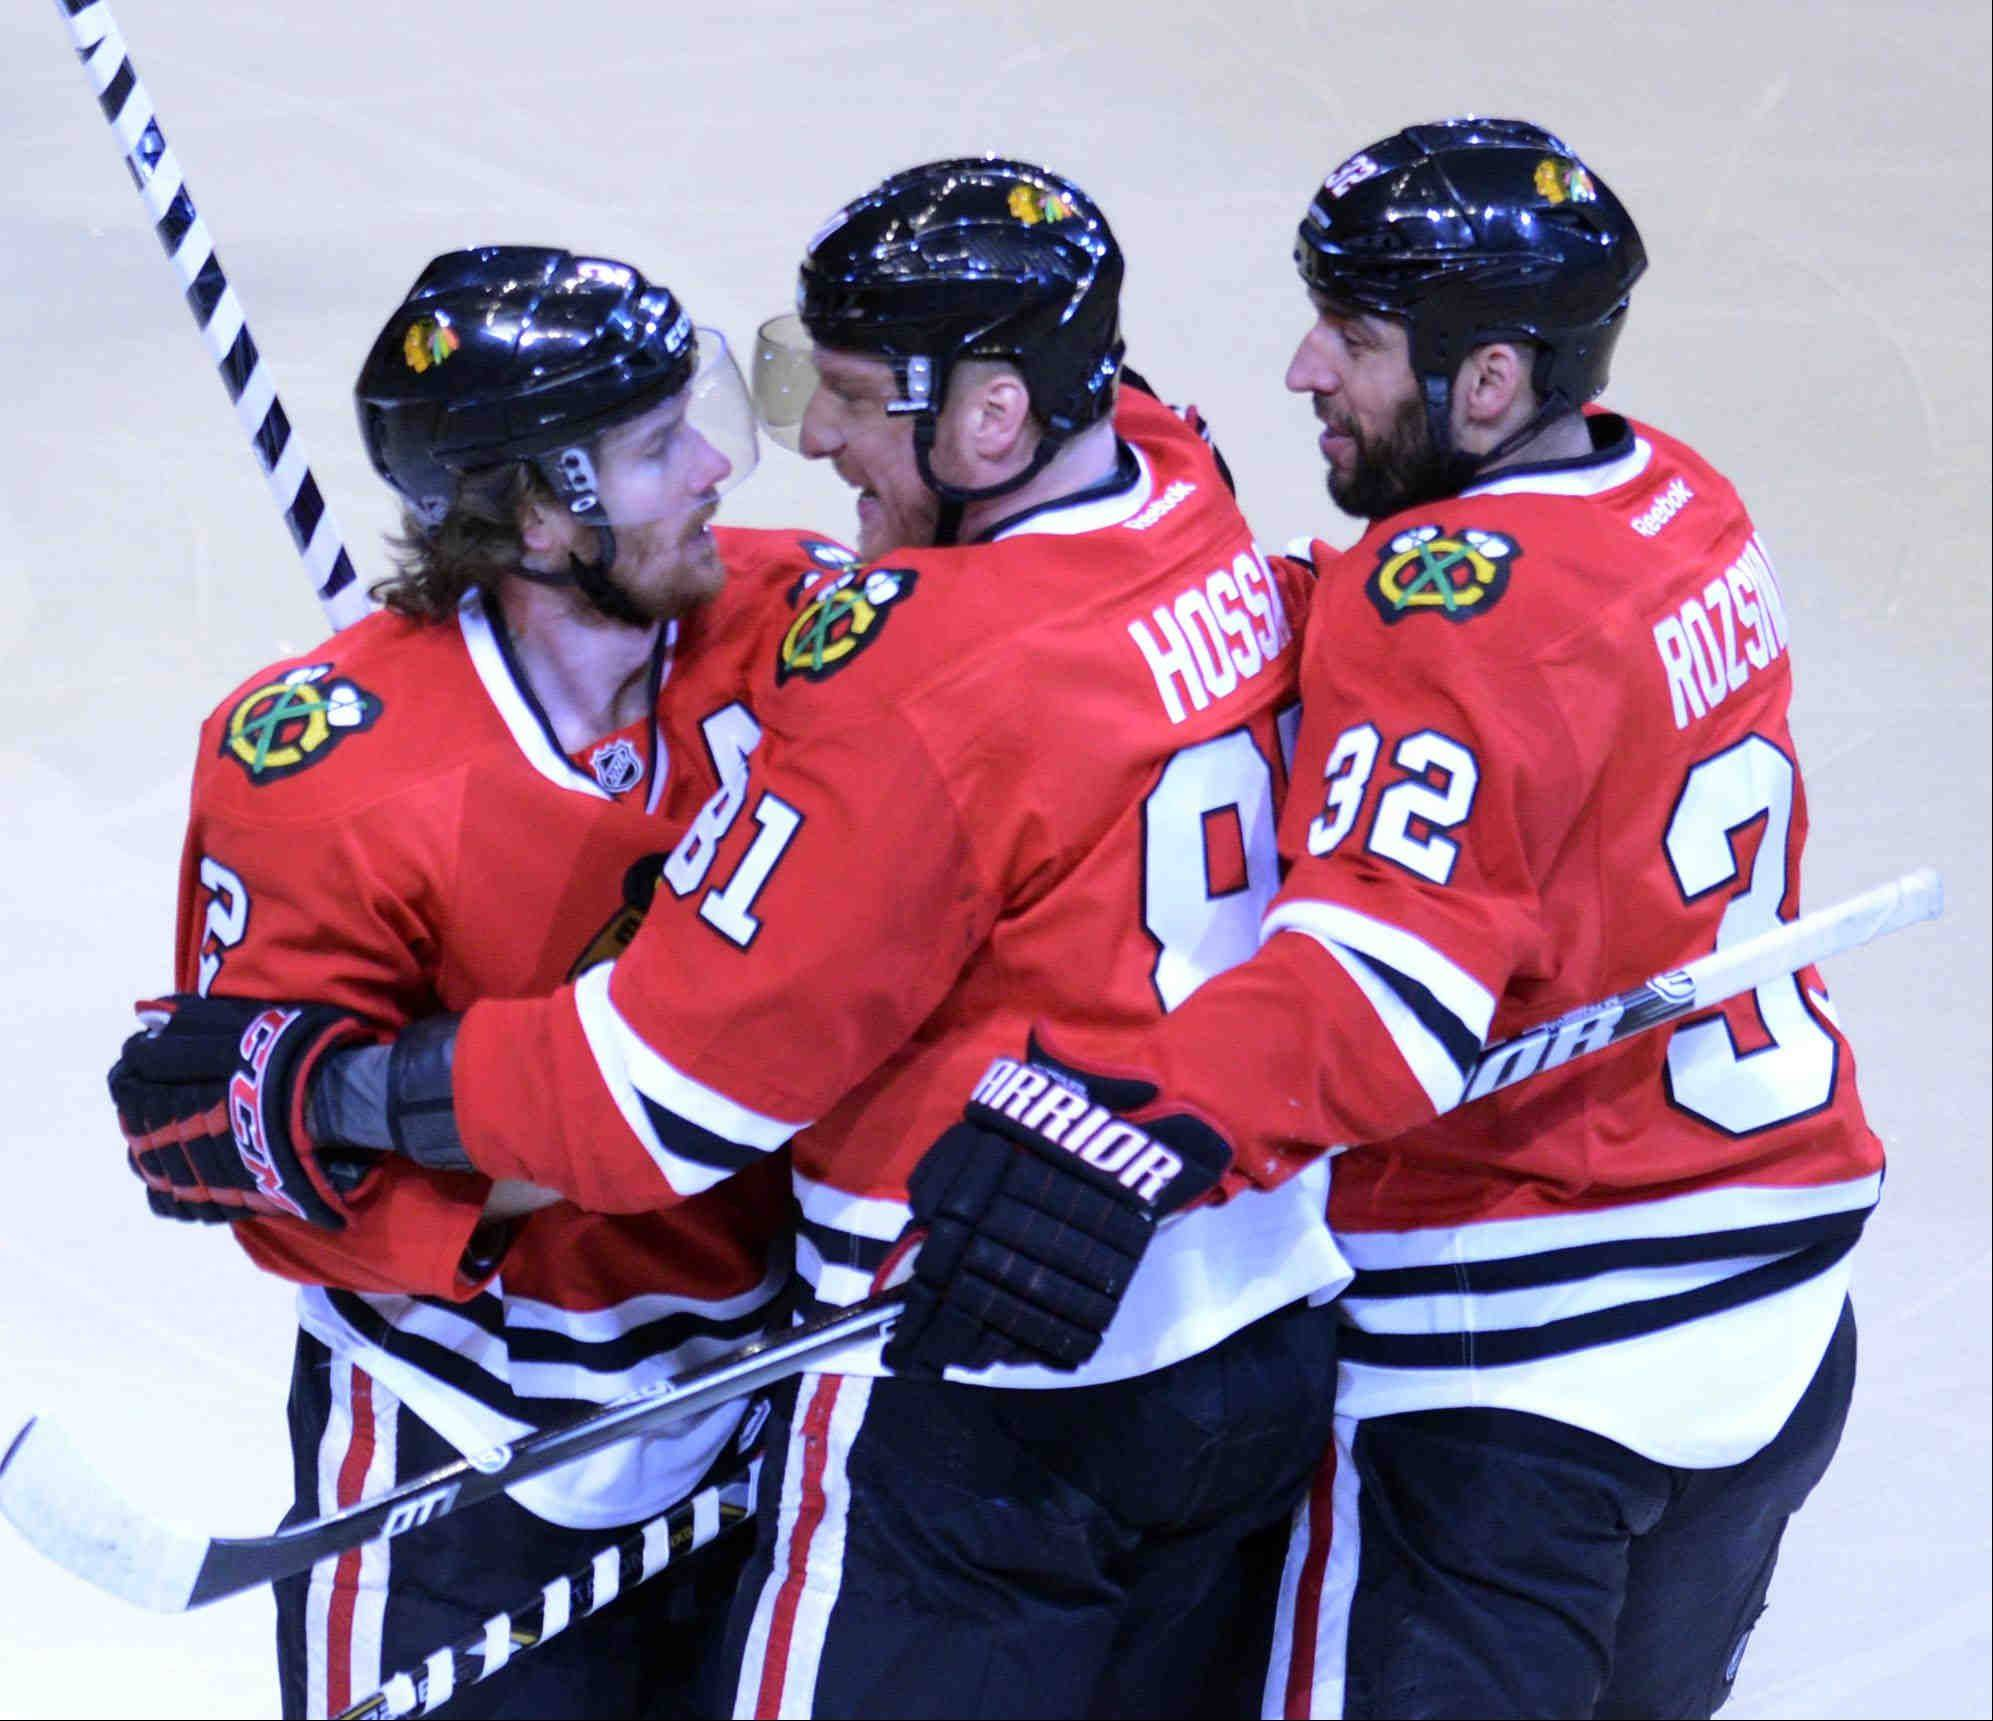 John Starks/jstarks@dailyherald.com Chicago Blackhawks defenseman Duncan Keith is congratulated by teammates Marian Hossa and Michal Rozsival after his first period goal against the Los Angeles Kings Saturday during the NHL Western Conference Finals Game 5 at the United Center in Chicago.